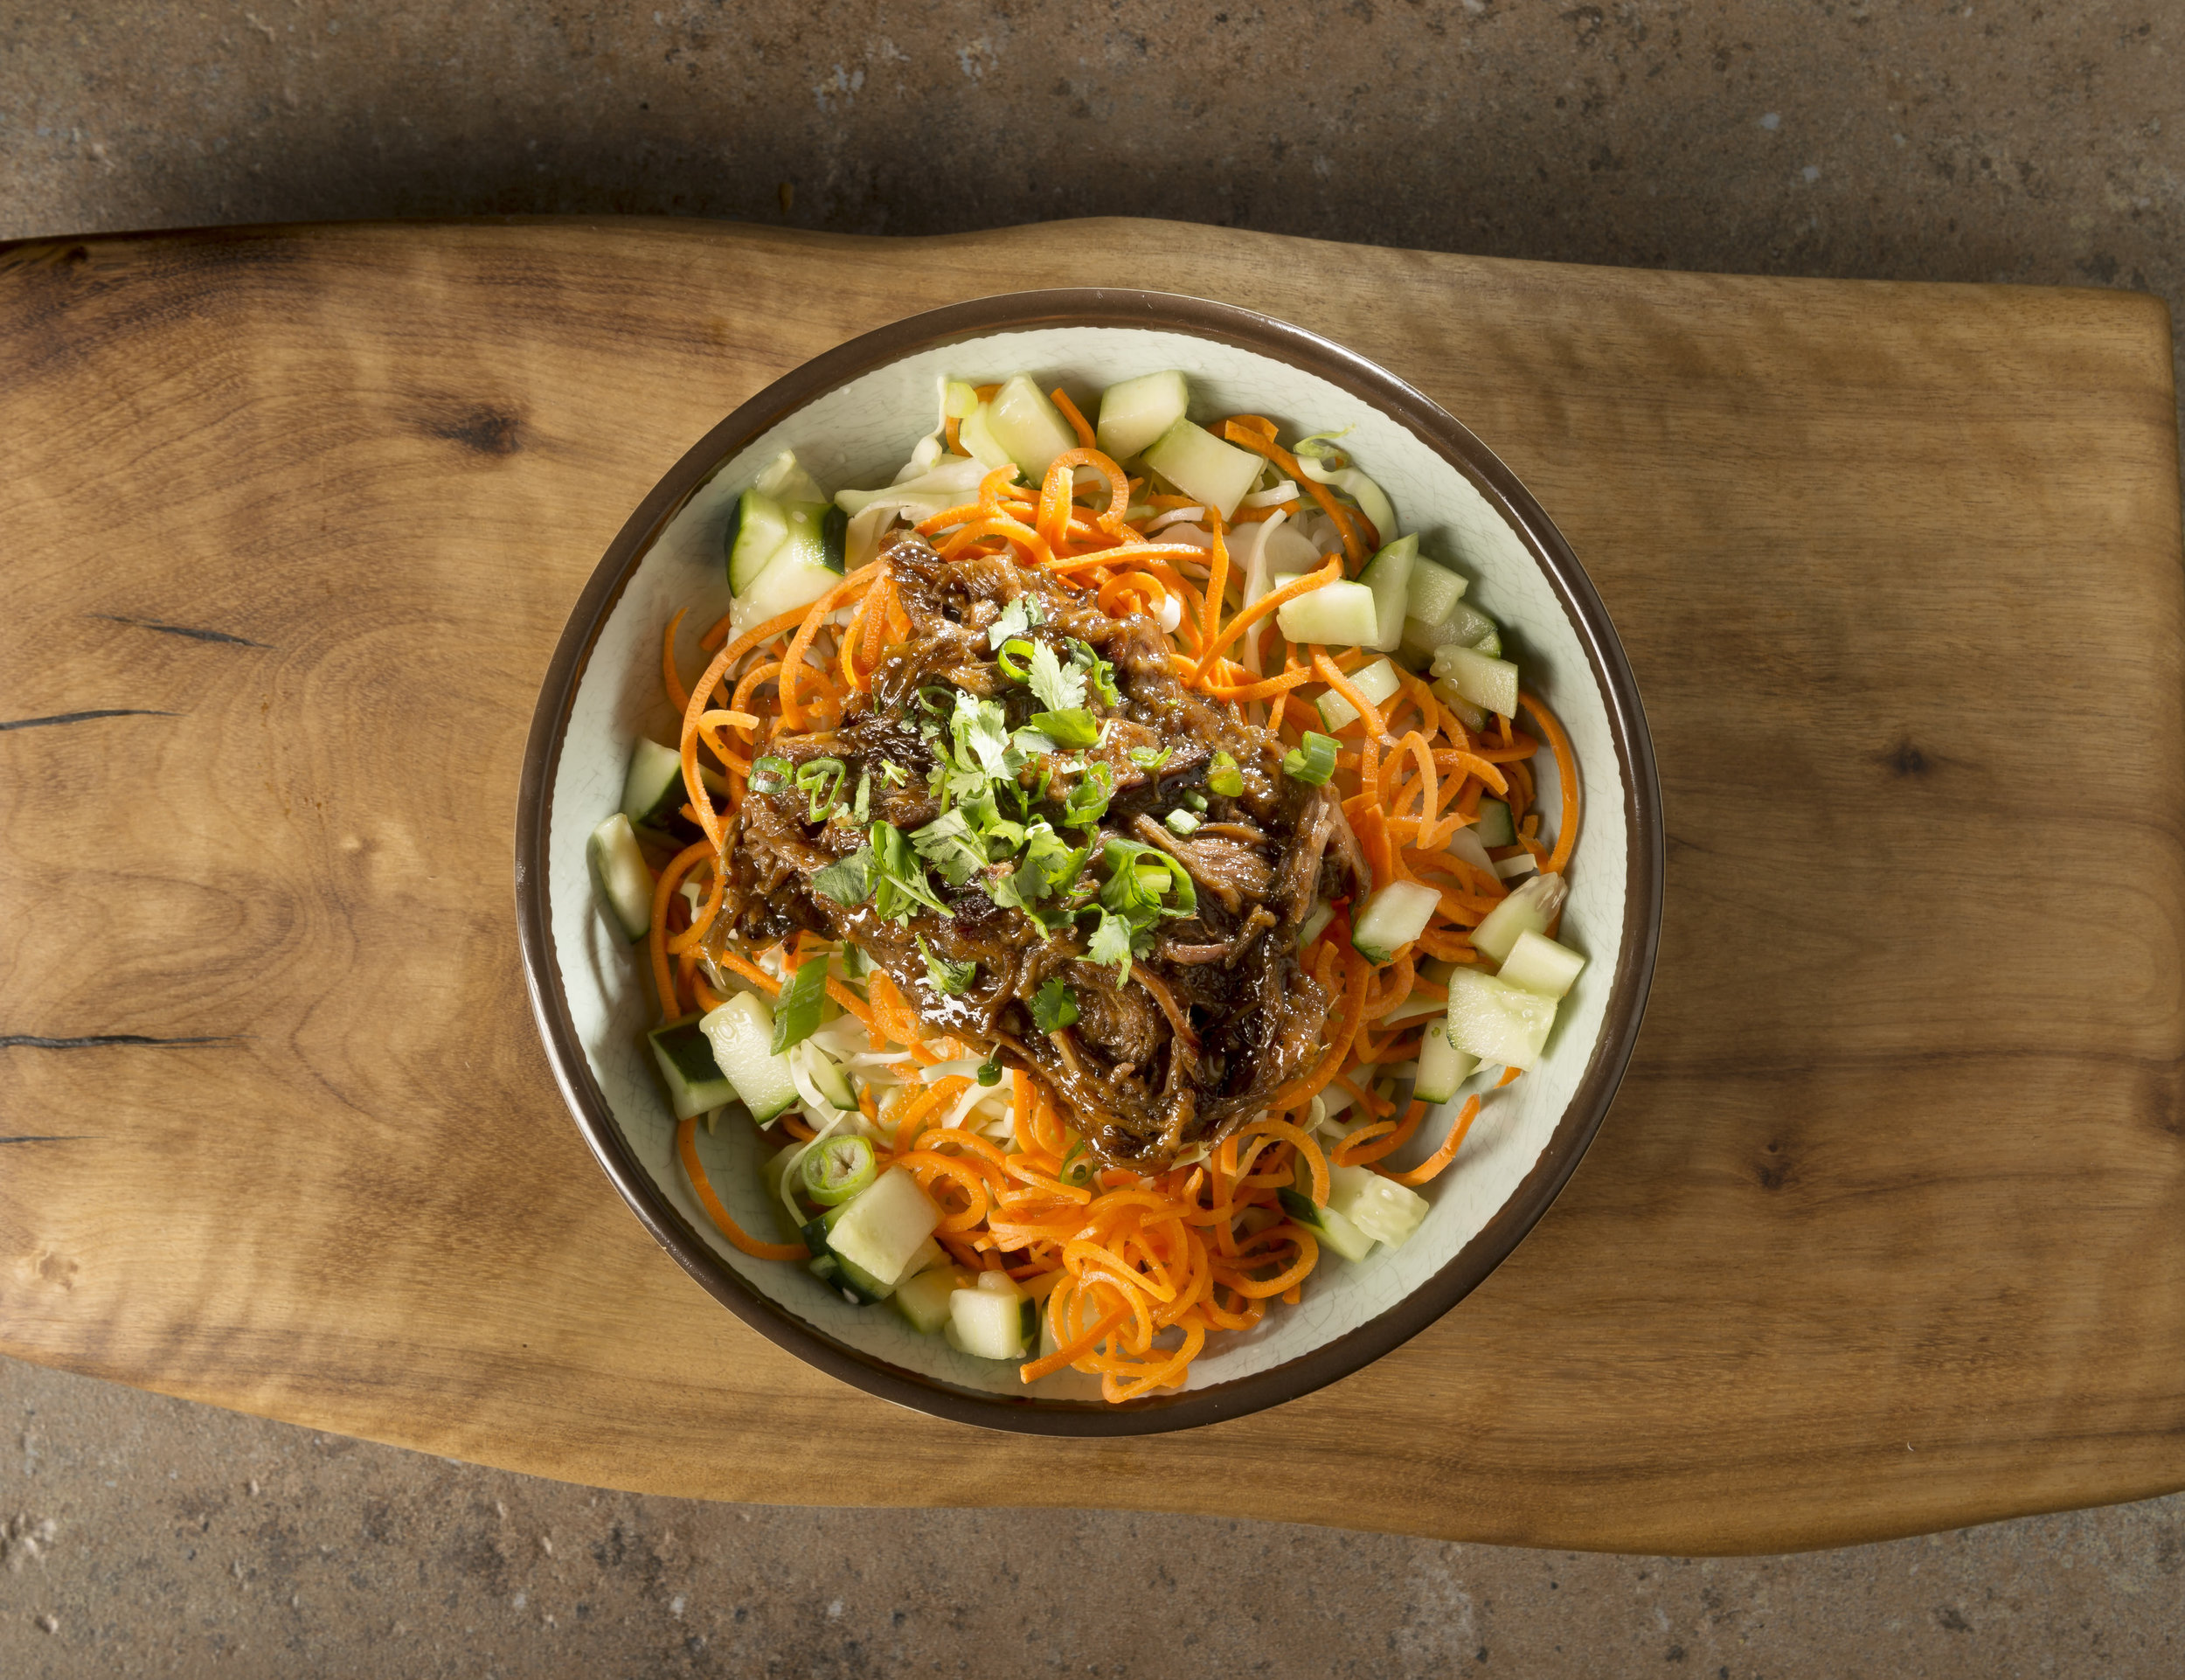 Yakuza Bowl - Slow-roasted pulled pork, marinated vegetables, cilantro, and green onions with house-made sweet soy sauce.$9.79